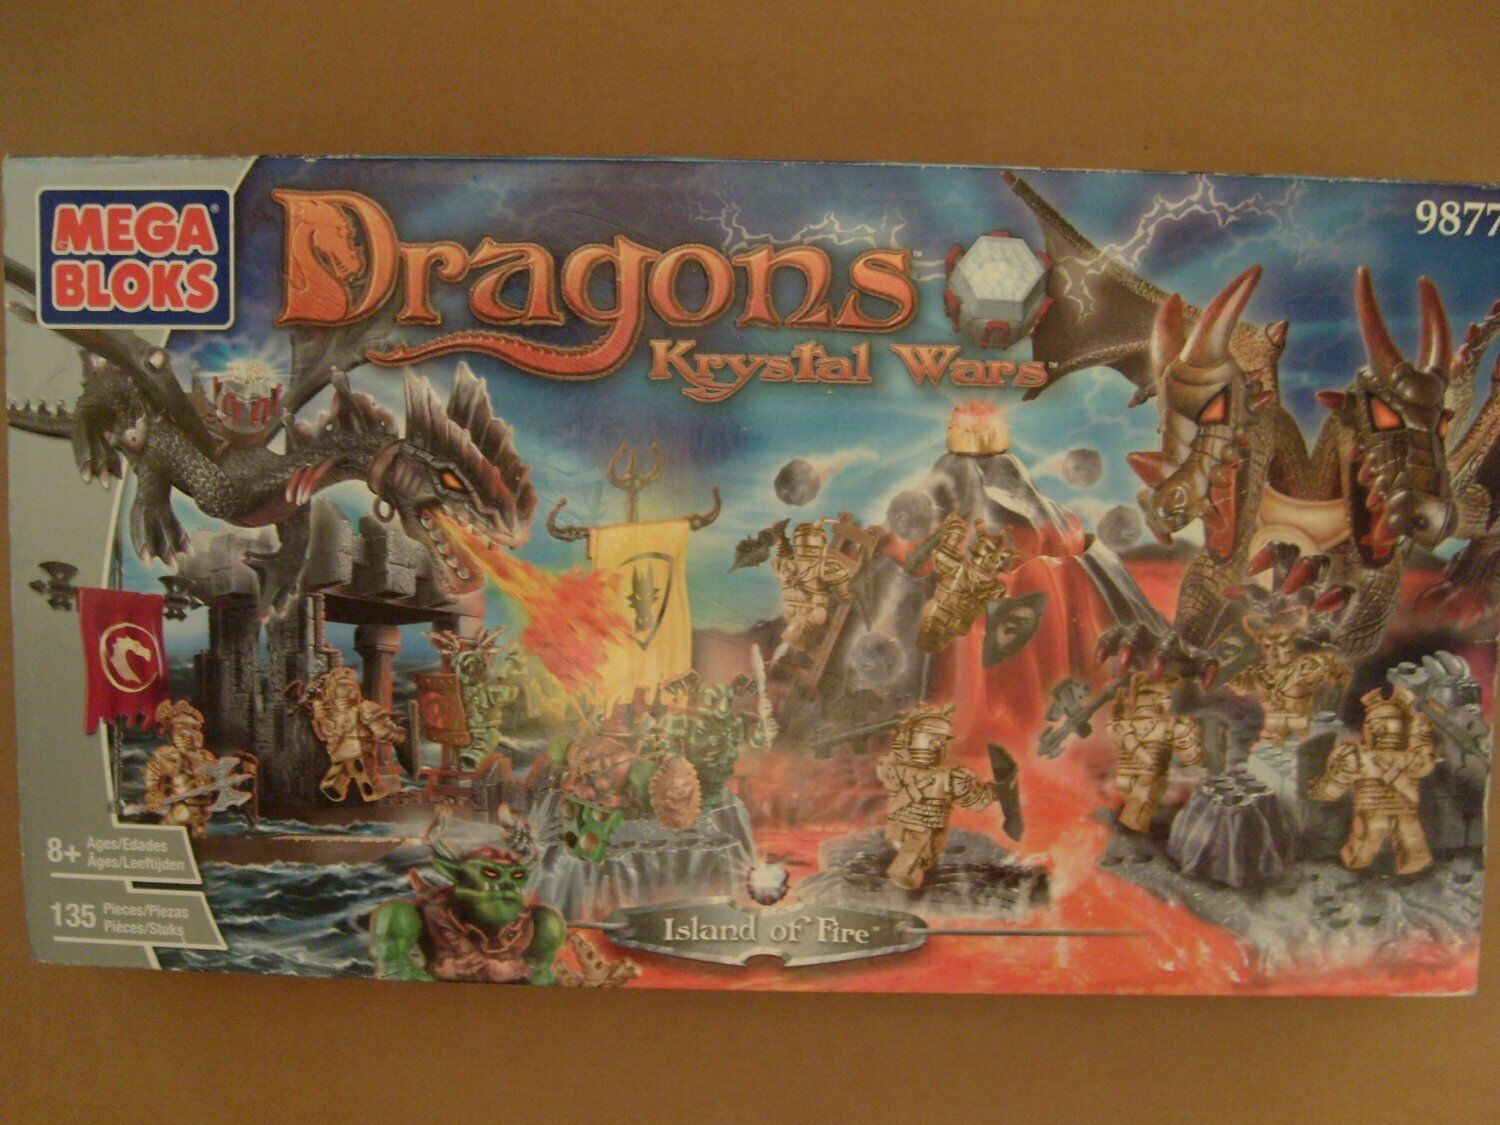 Mega Bloks 9877 Dragon Krystal Wars Island of Fire New Sealed